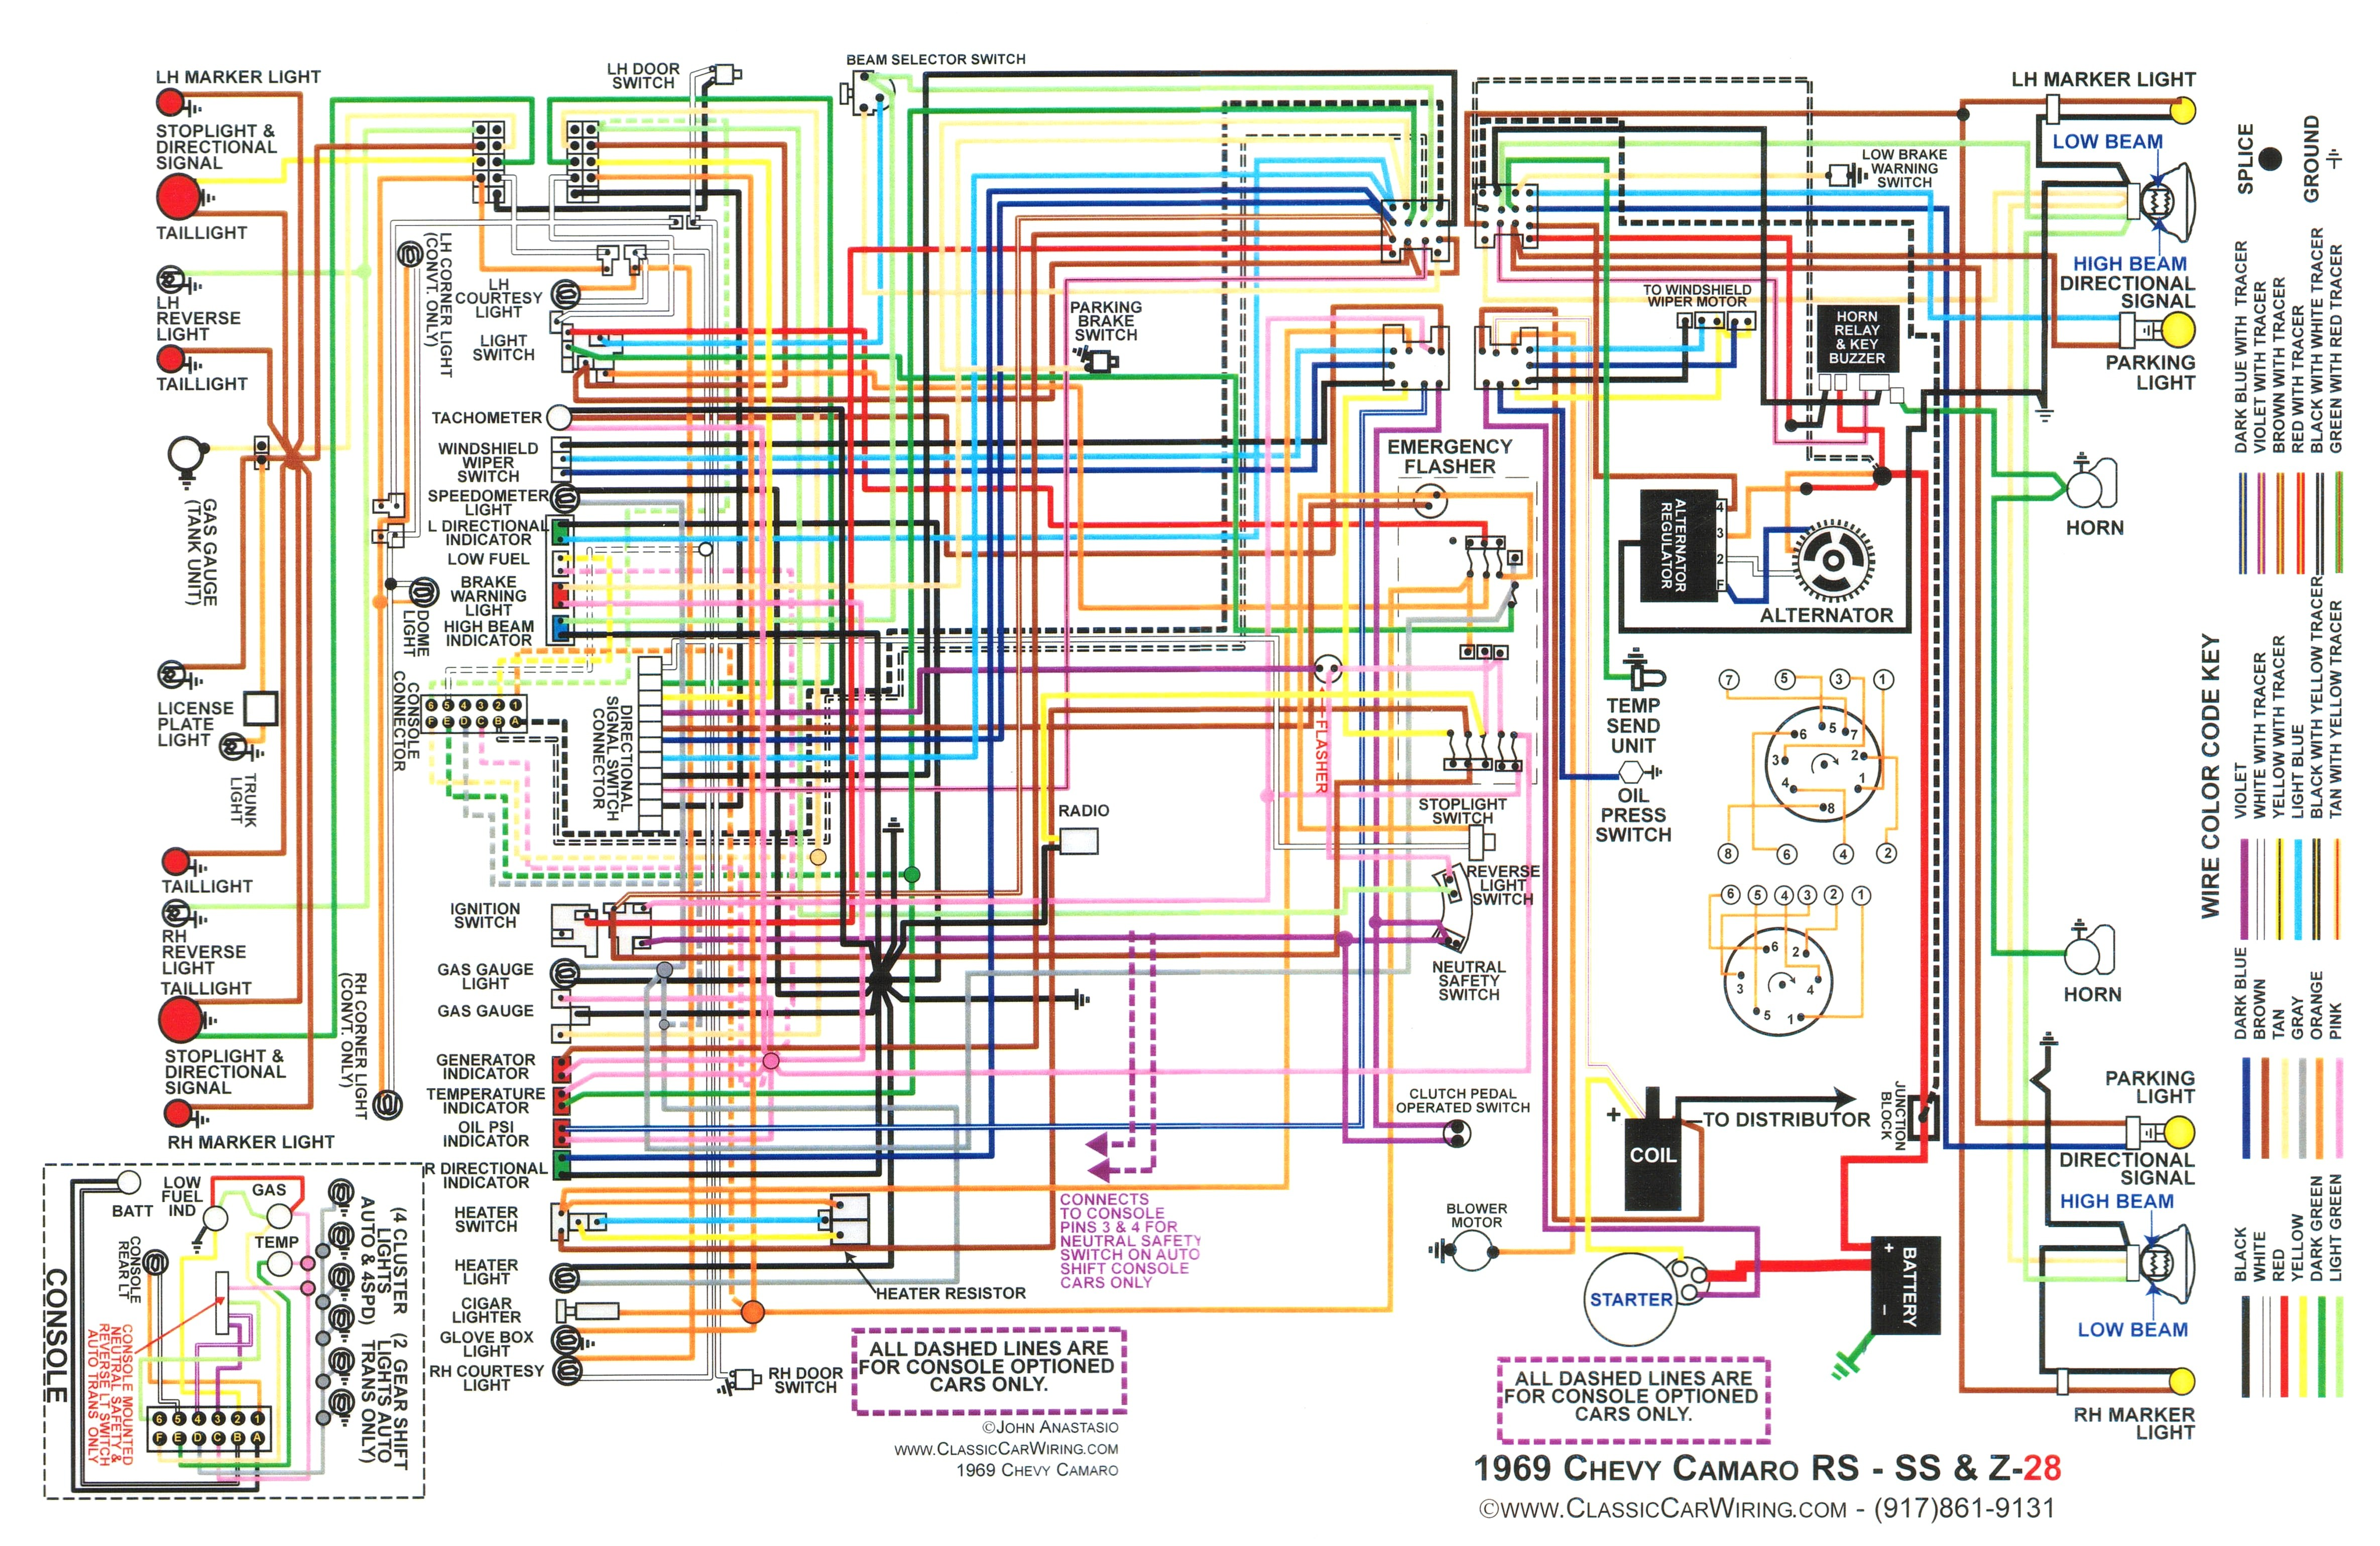 Camaro Wiring Harness Diagram Auto Electrical Wiring Diagram 69 Camaro  Wiring 1972 Camaro Ac Wiring